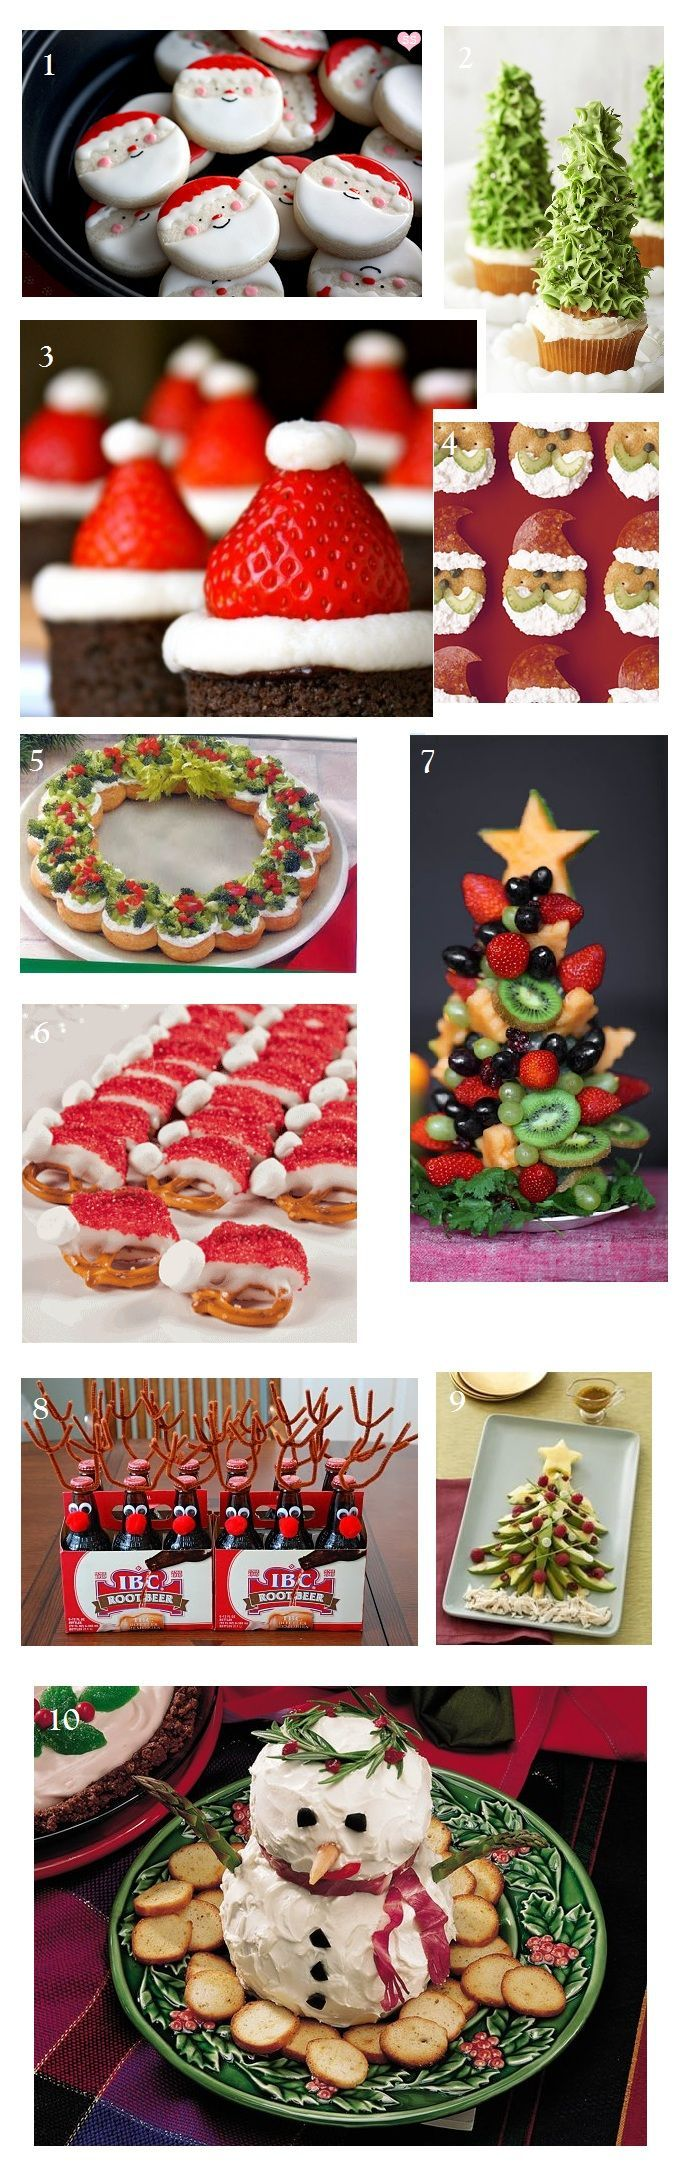 10 Awesome Christmas Party Food Ideas and Recipes